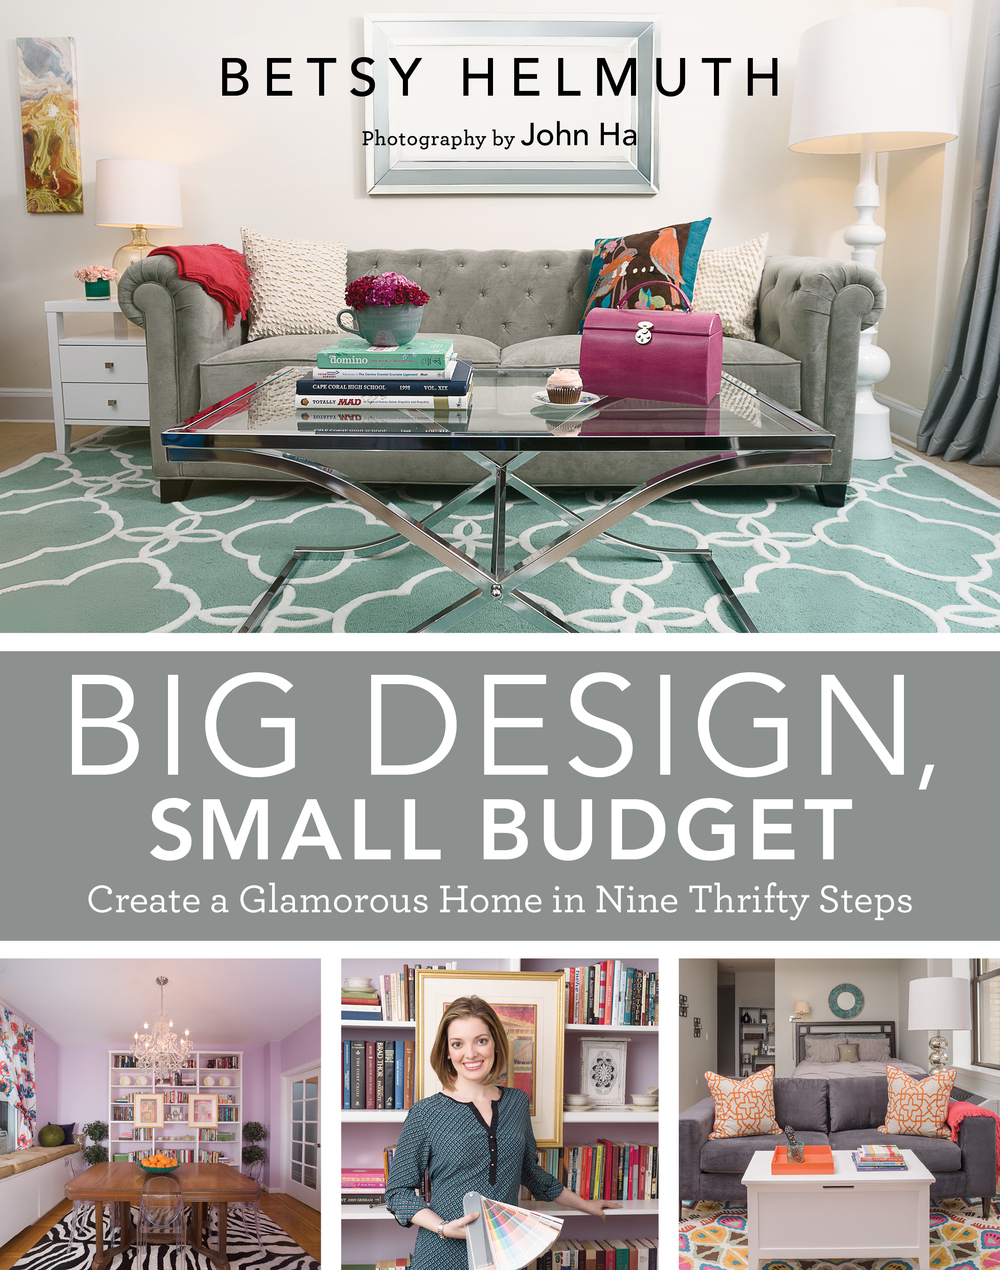 Big Design Small Budget_Cover Image.jpg